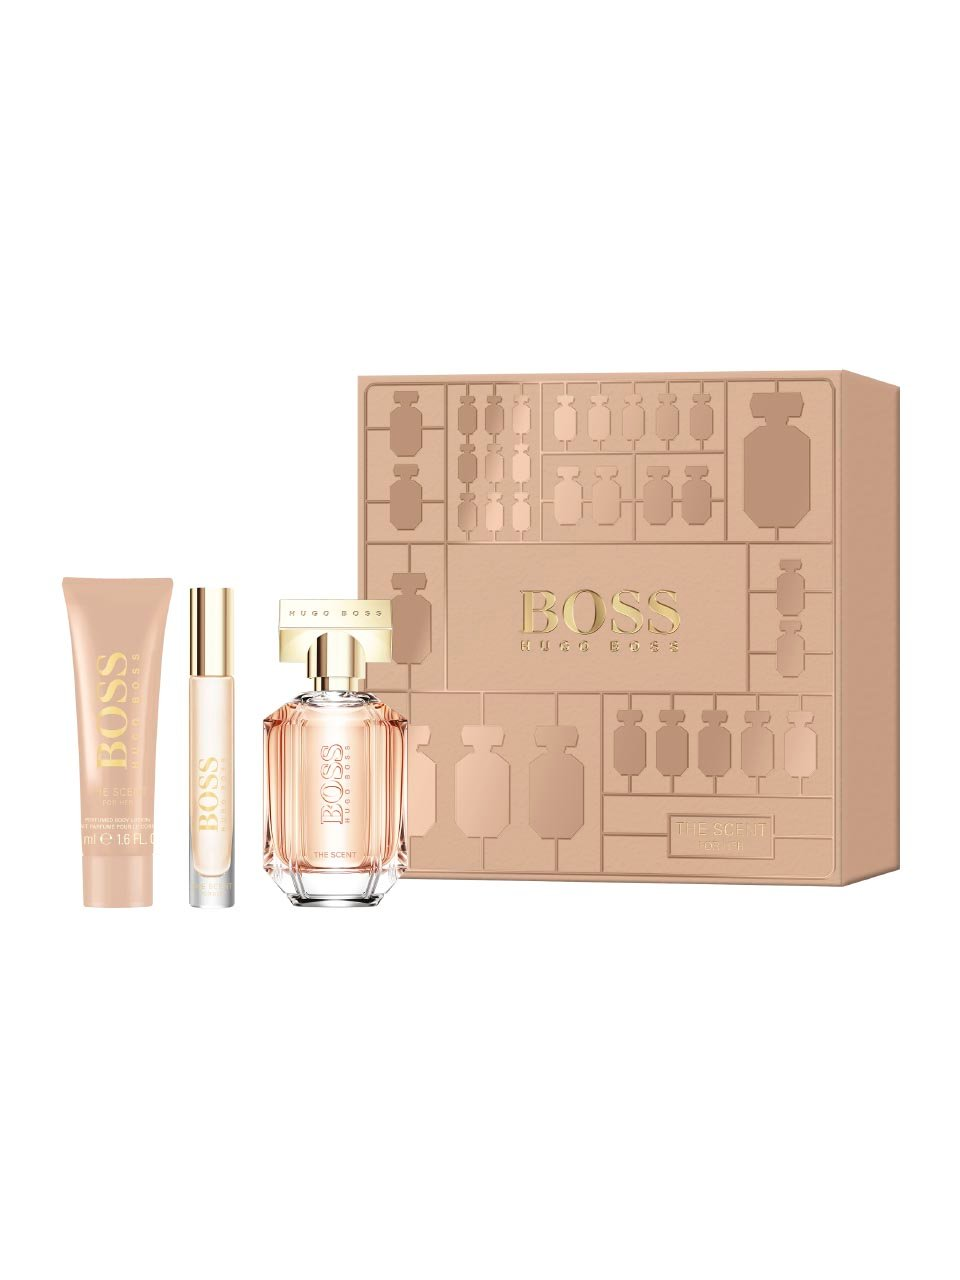 Hugo Boss - The Scent For Her EDP 50 ml + Body Lotion 50 ml + Rollerball EDP 7.4 ml - Giftset